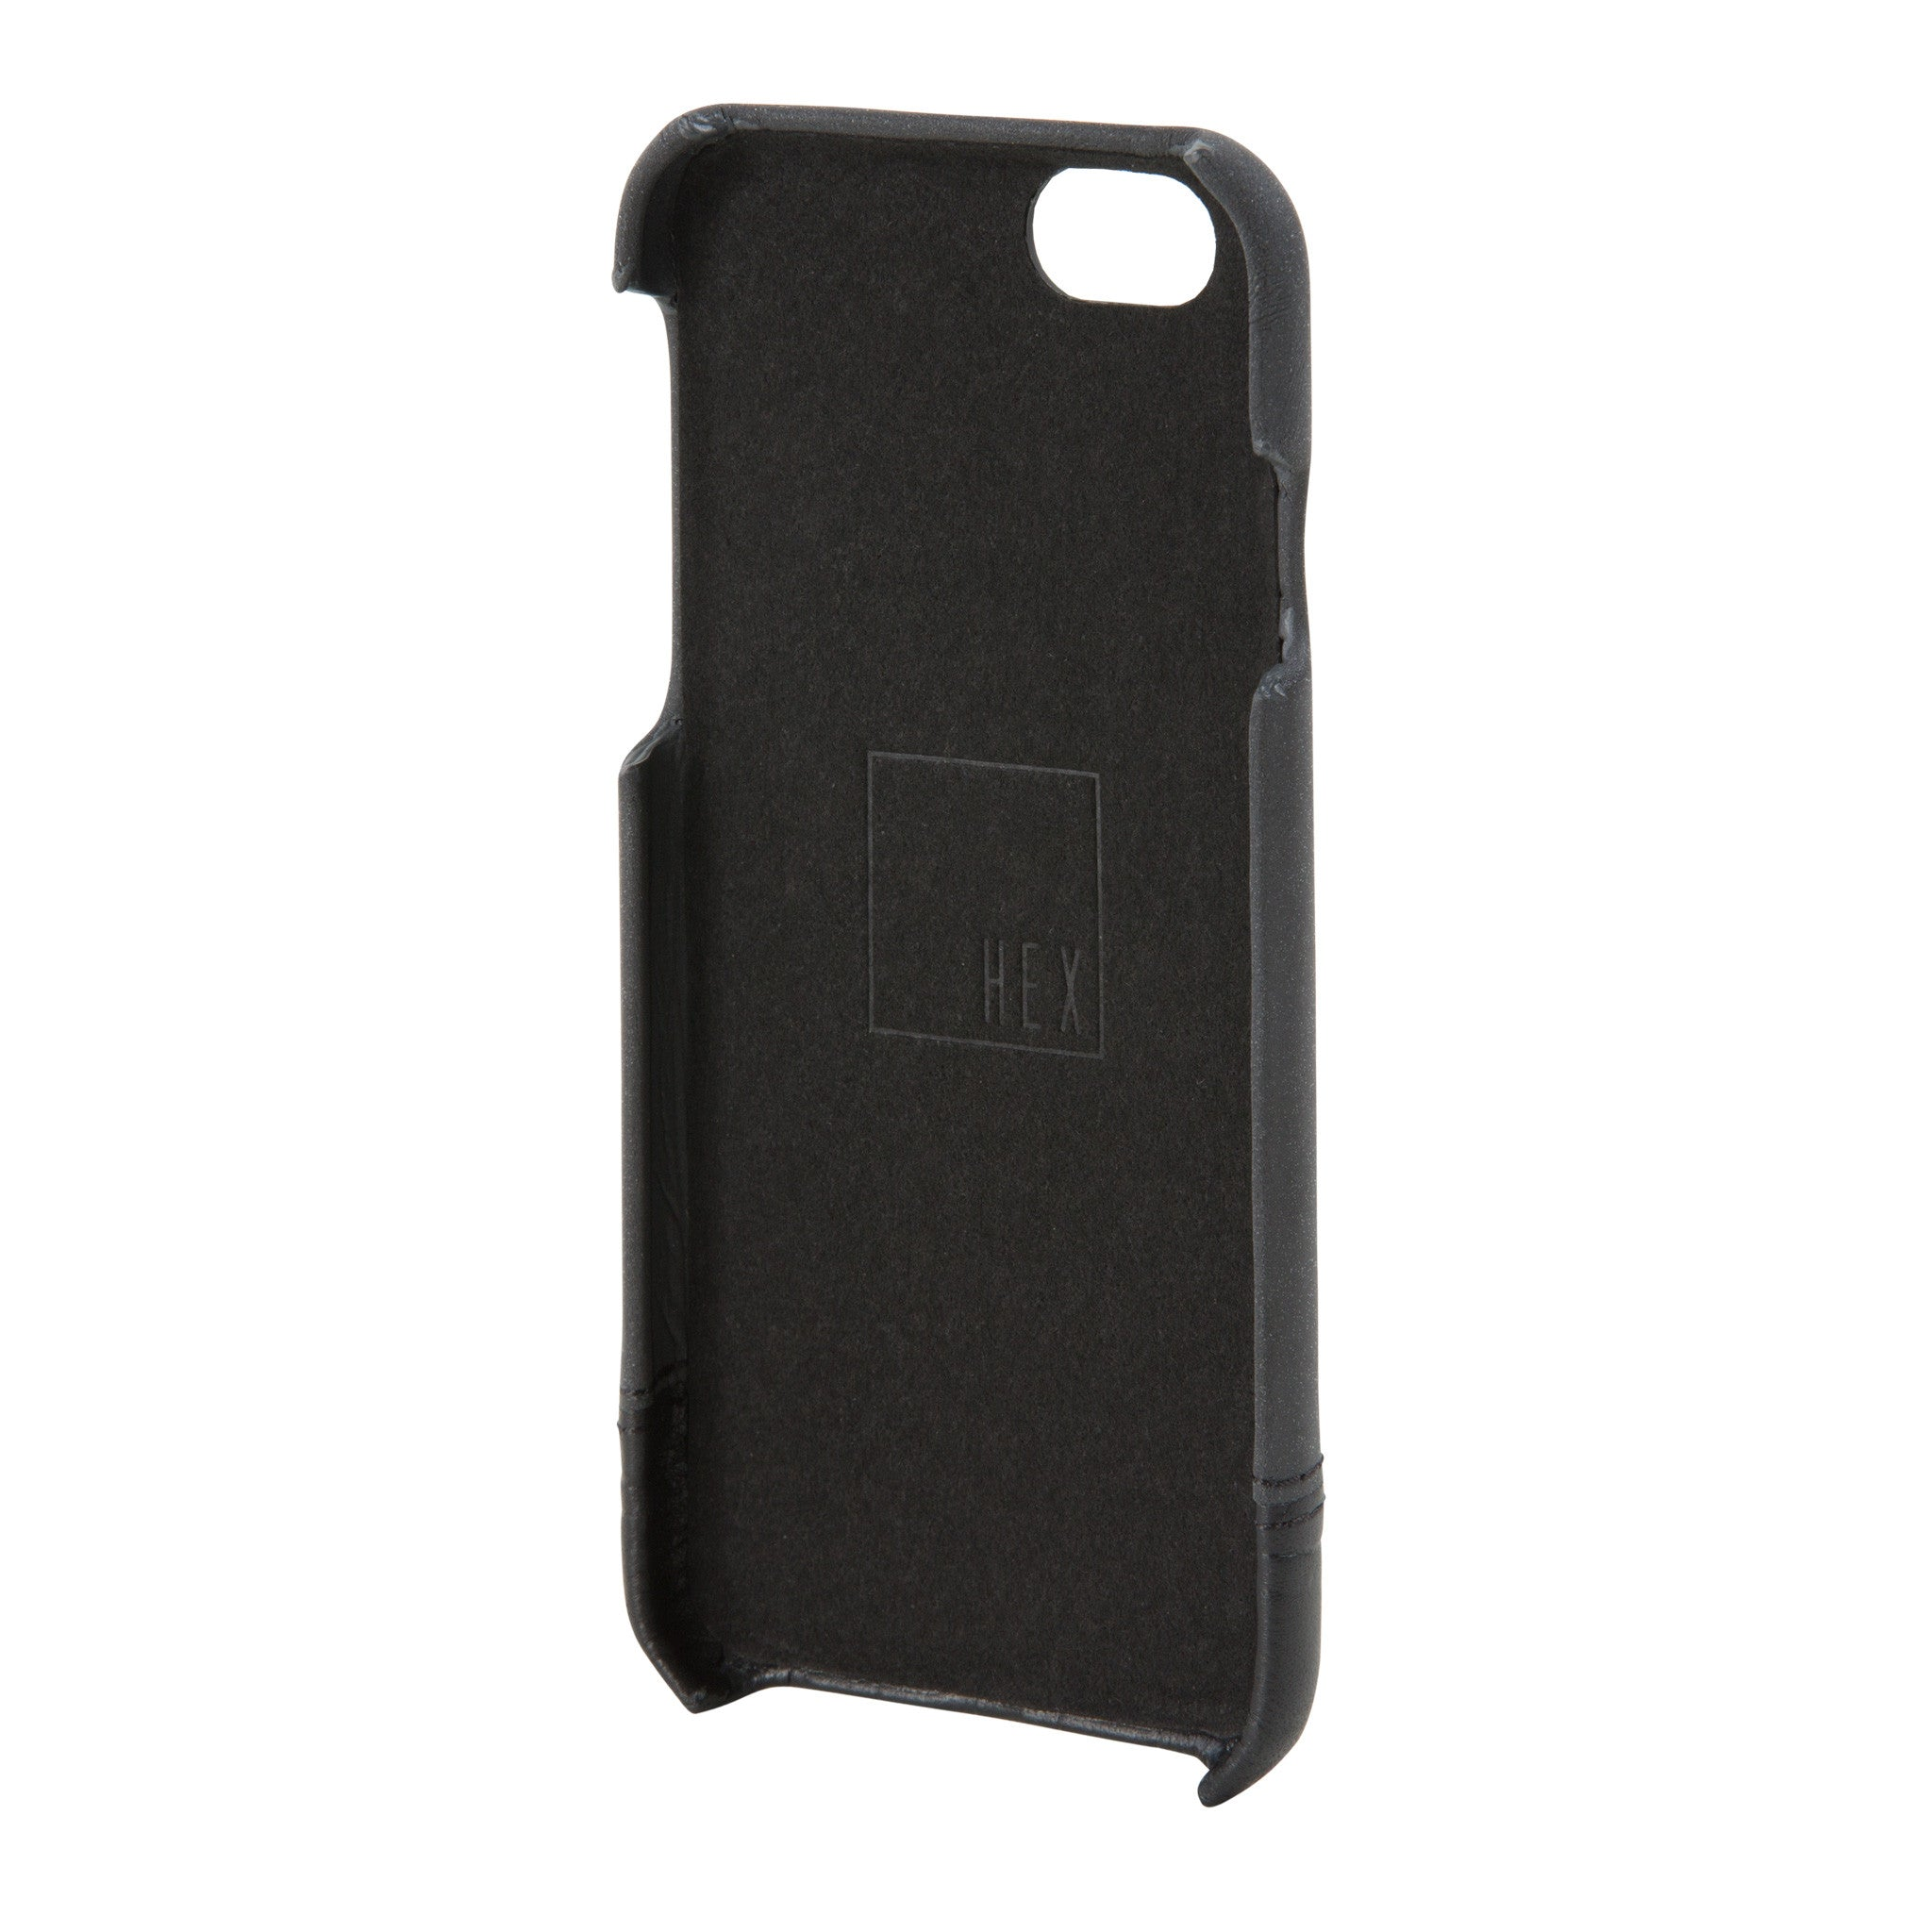 sports shoes f6149 76722 Black Reflective Focus Case for iPhone 6s